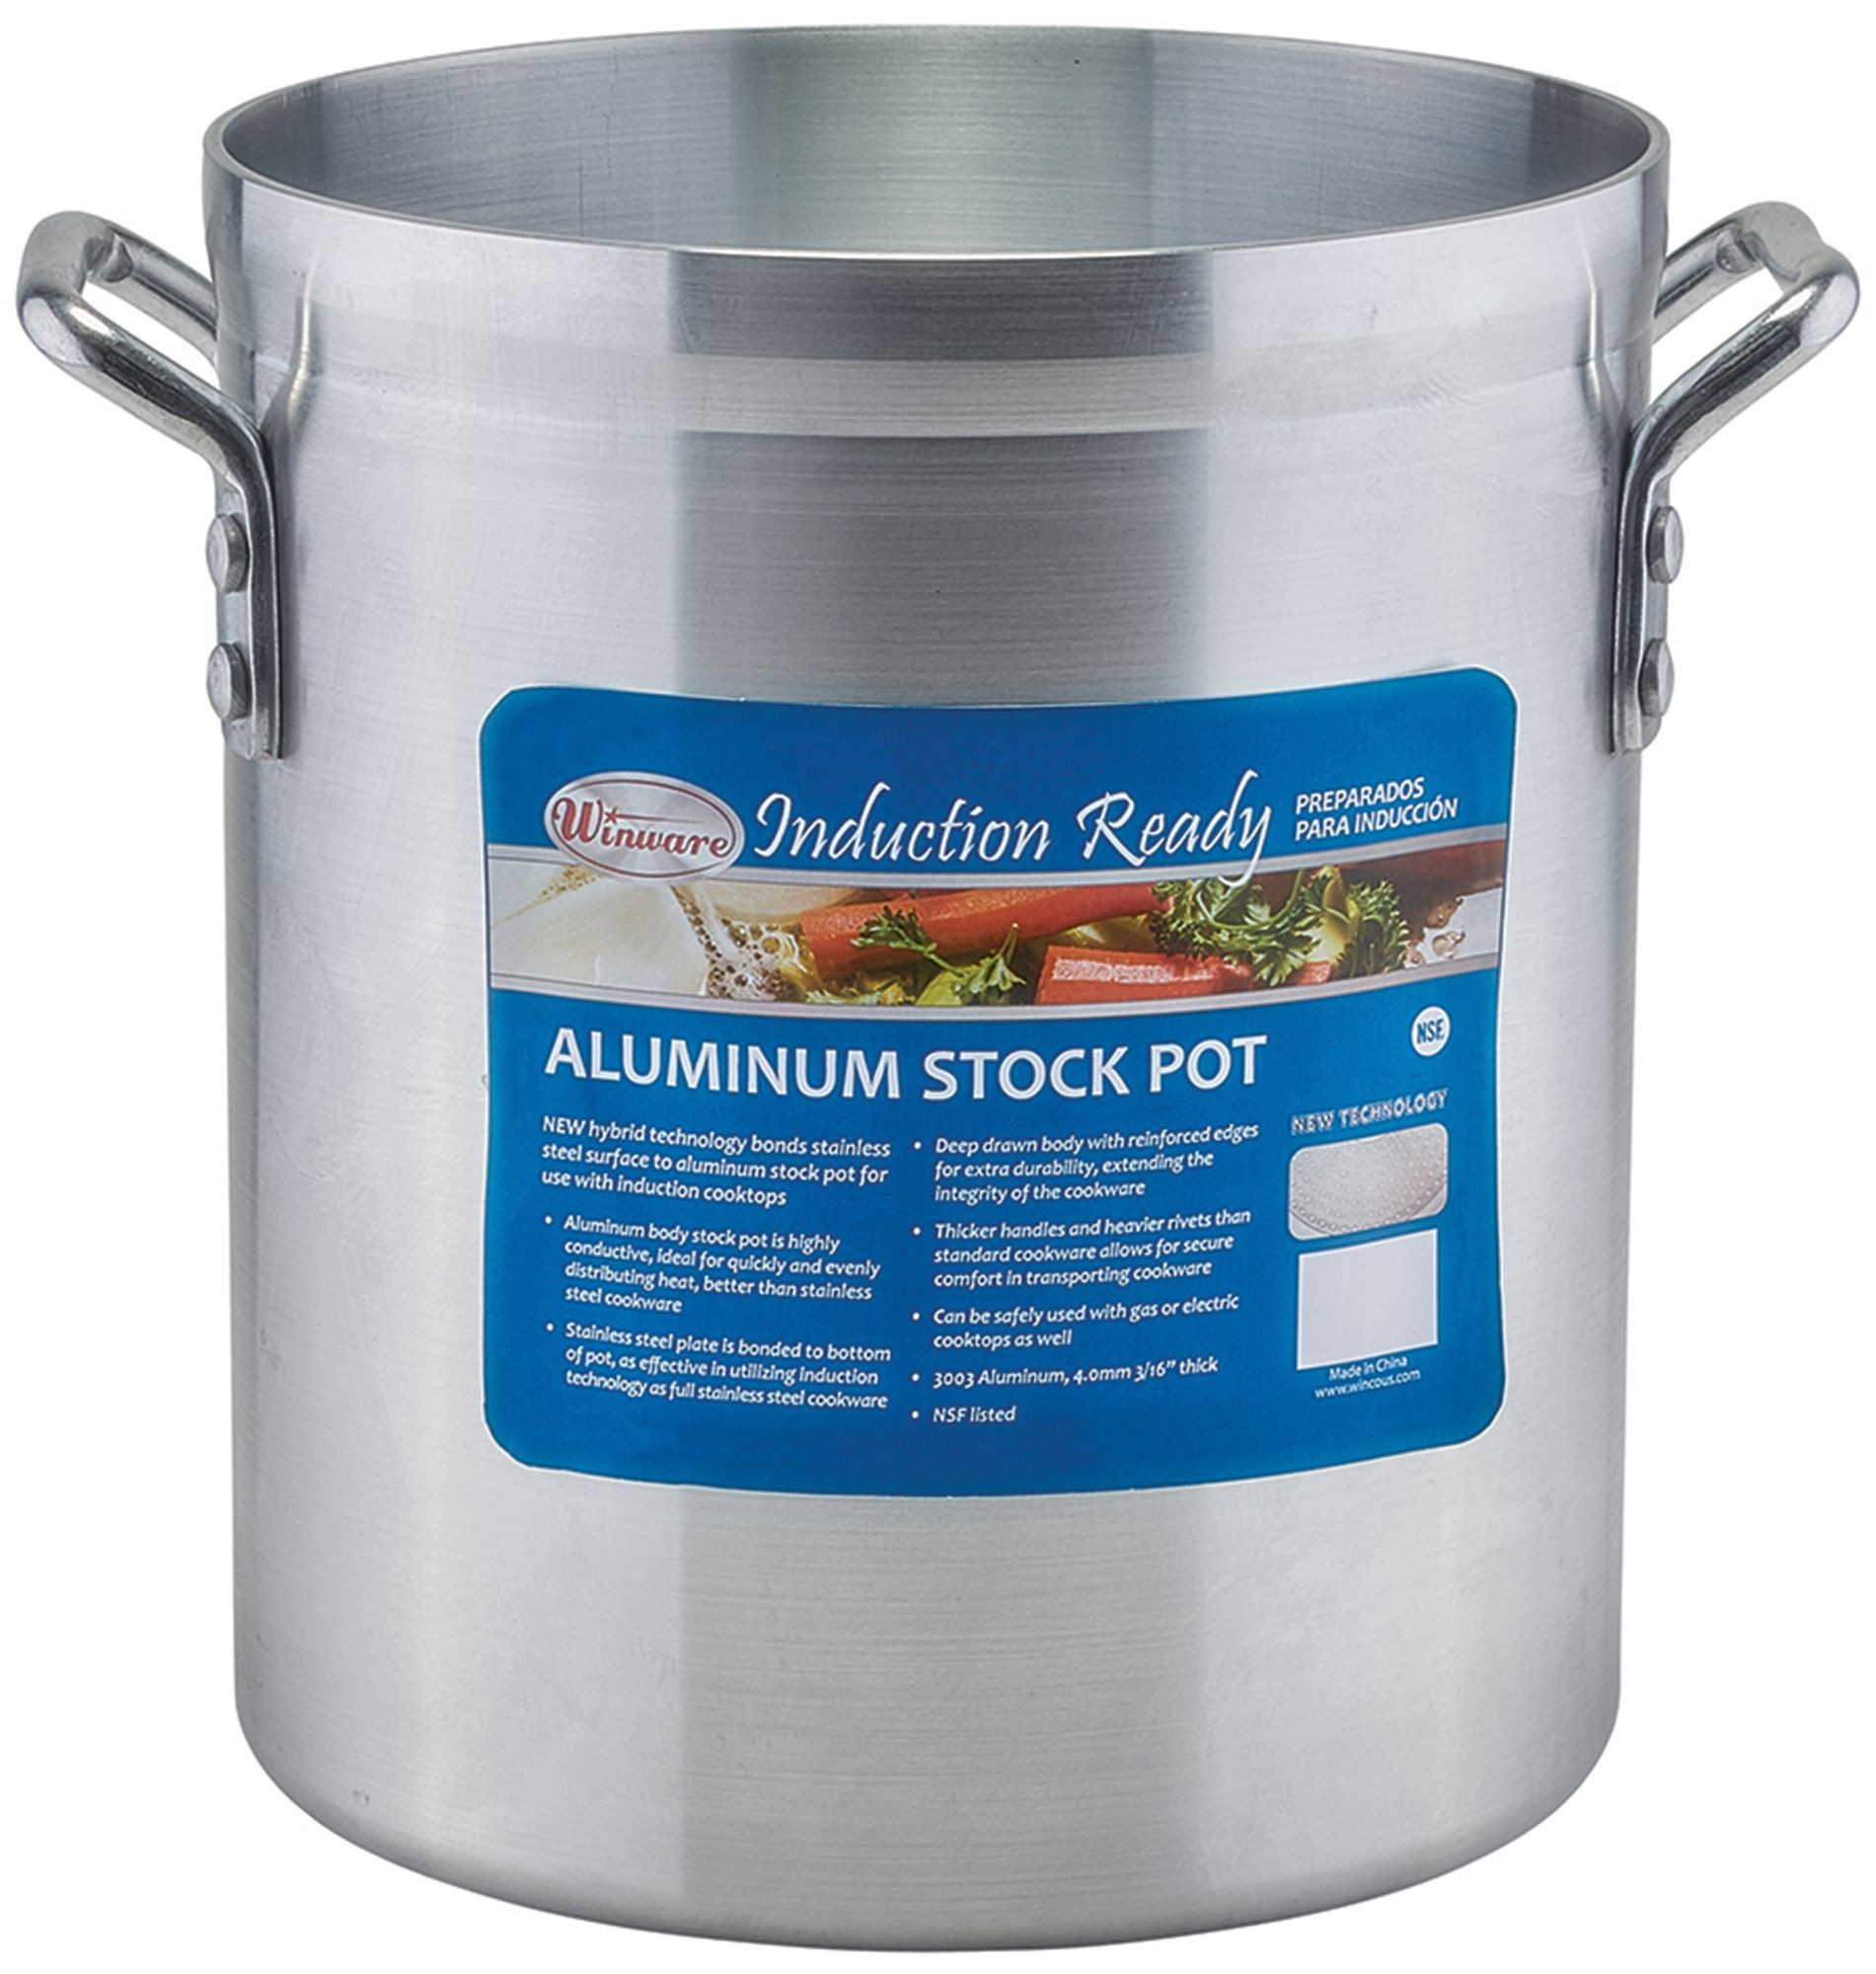 Winco AXSI-12 12 Qt. Induction Ready Aluminum Stock Pot with Stainless Steel Bottom